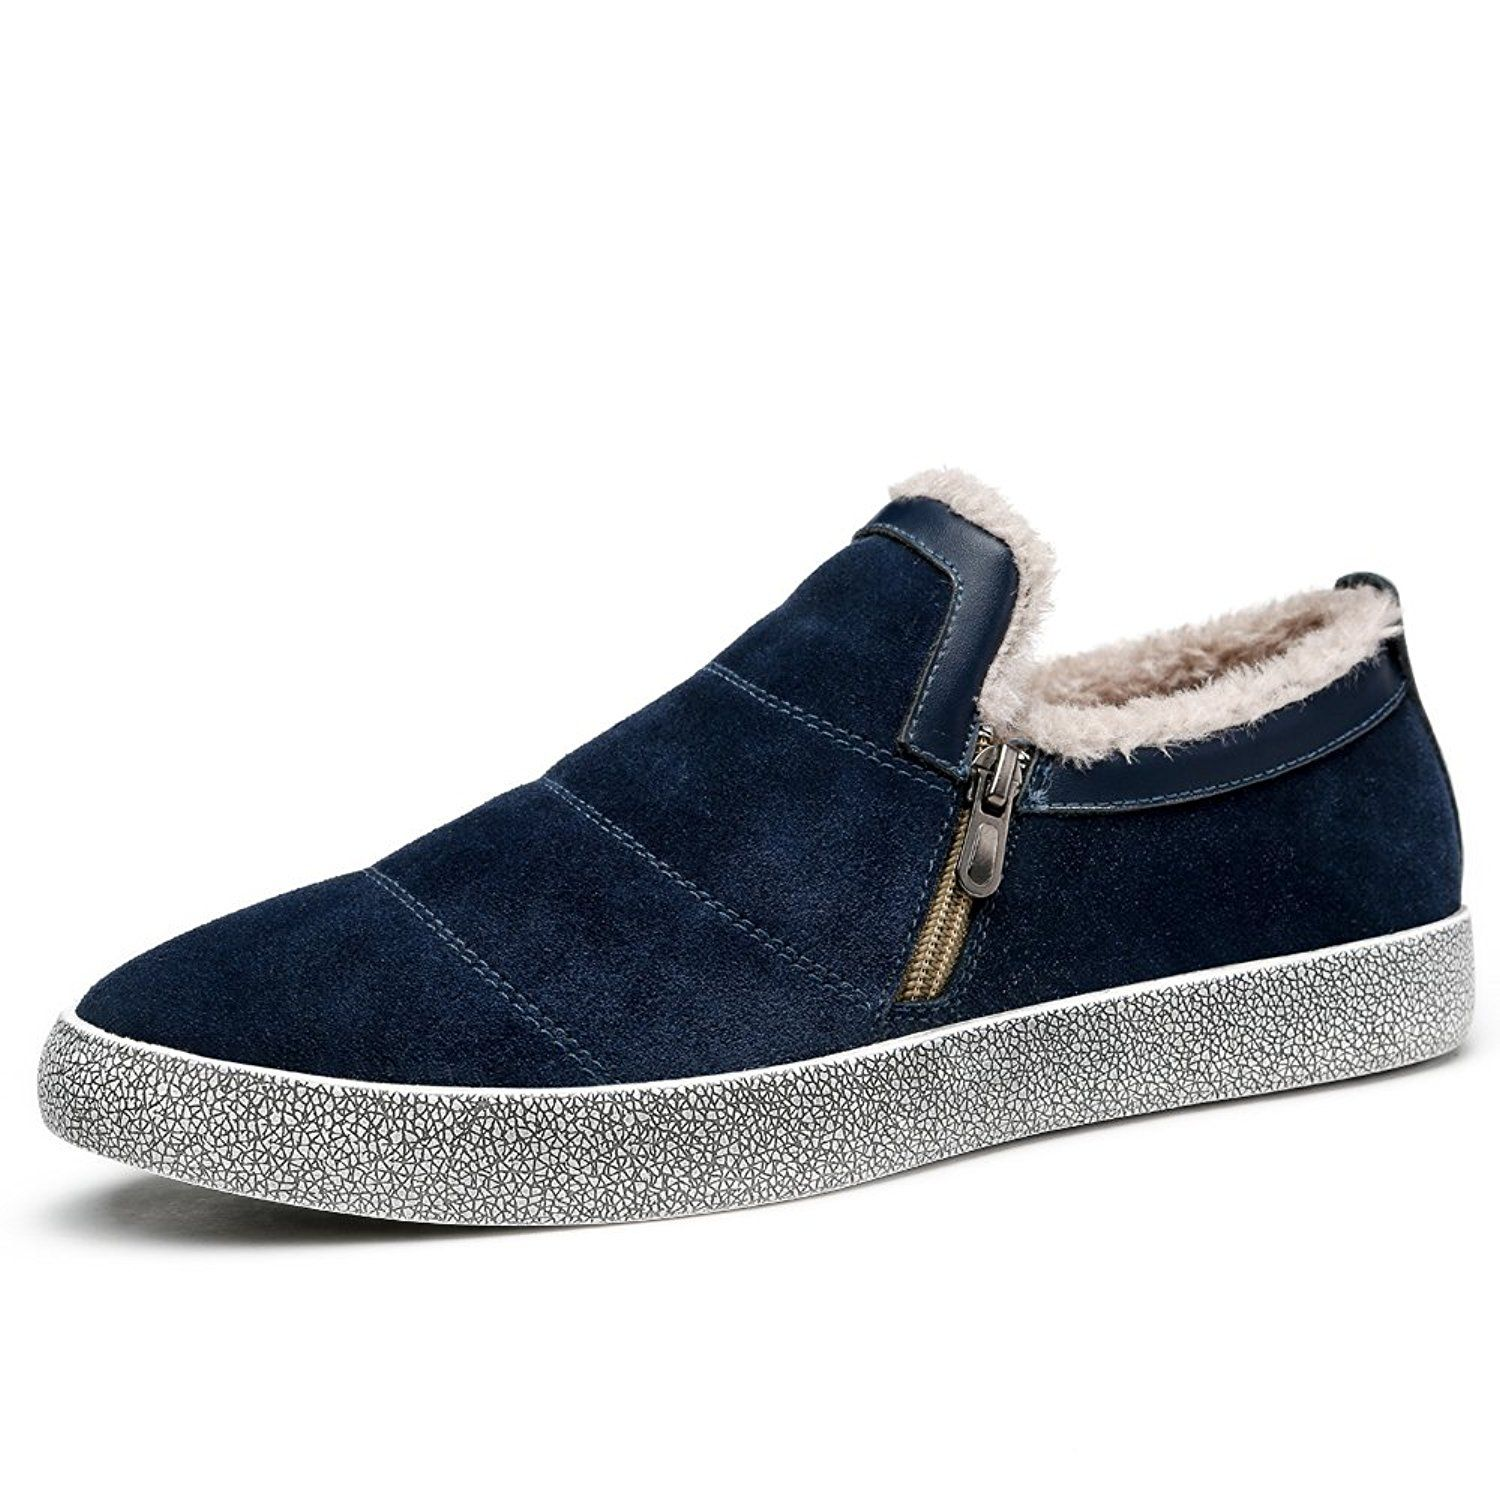 Men's Winter Warm Suede Fur Lined Low top Work shoes Snow Boots